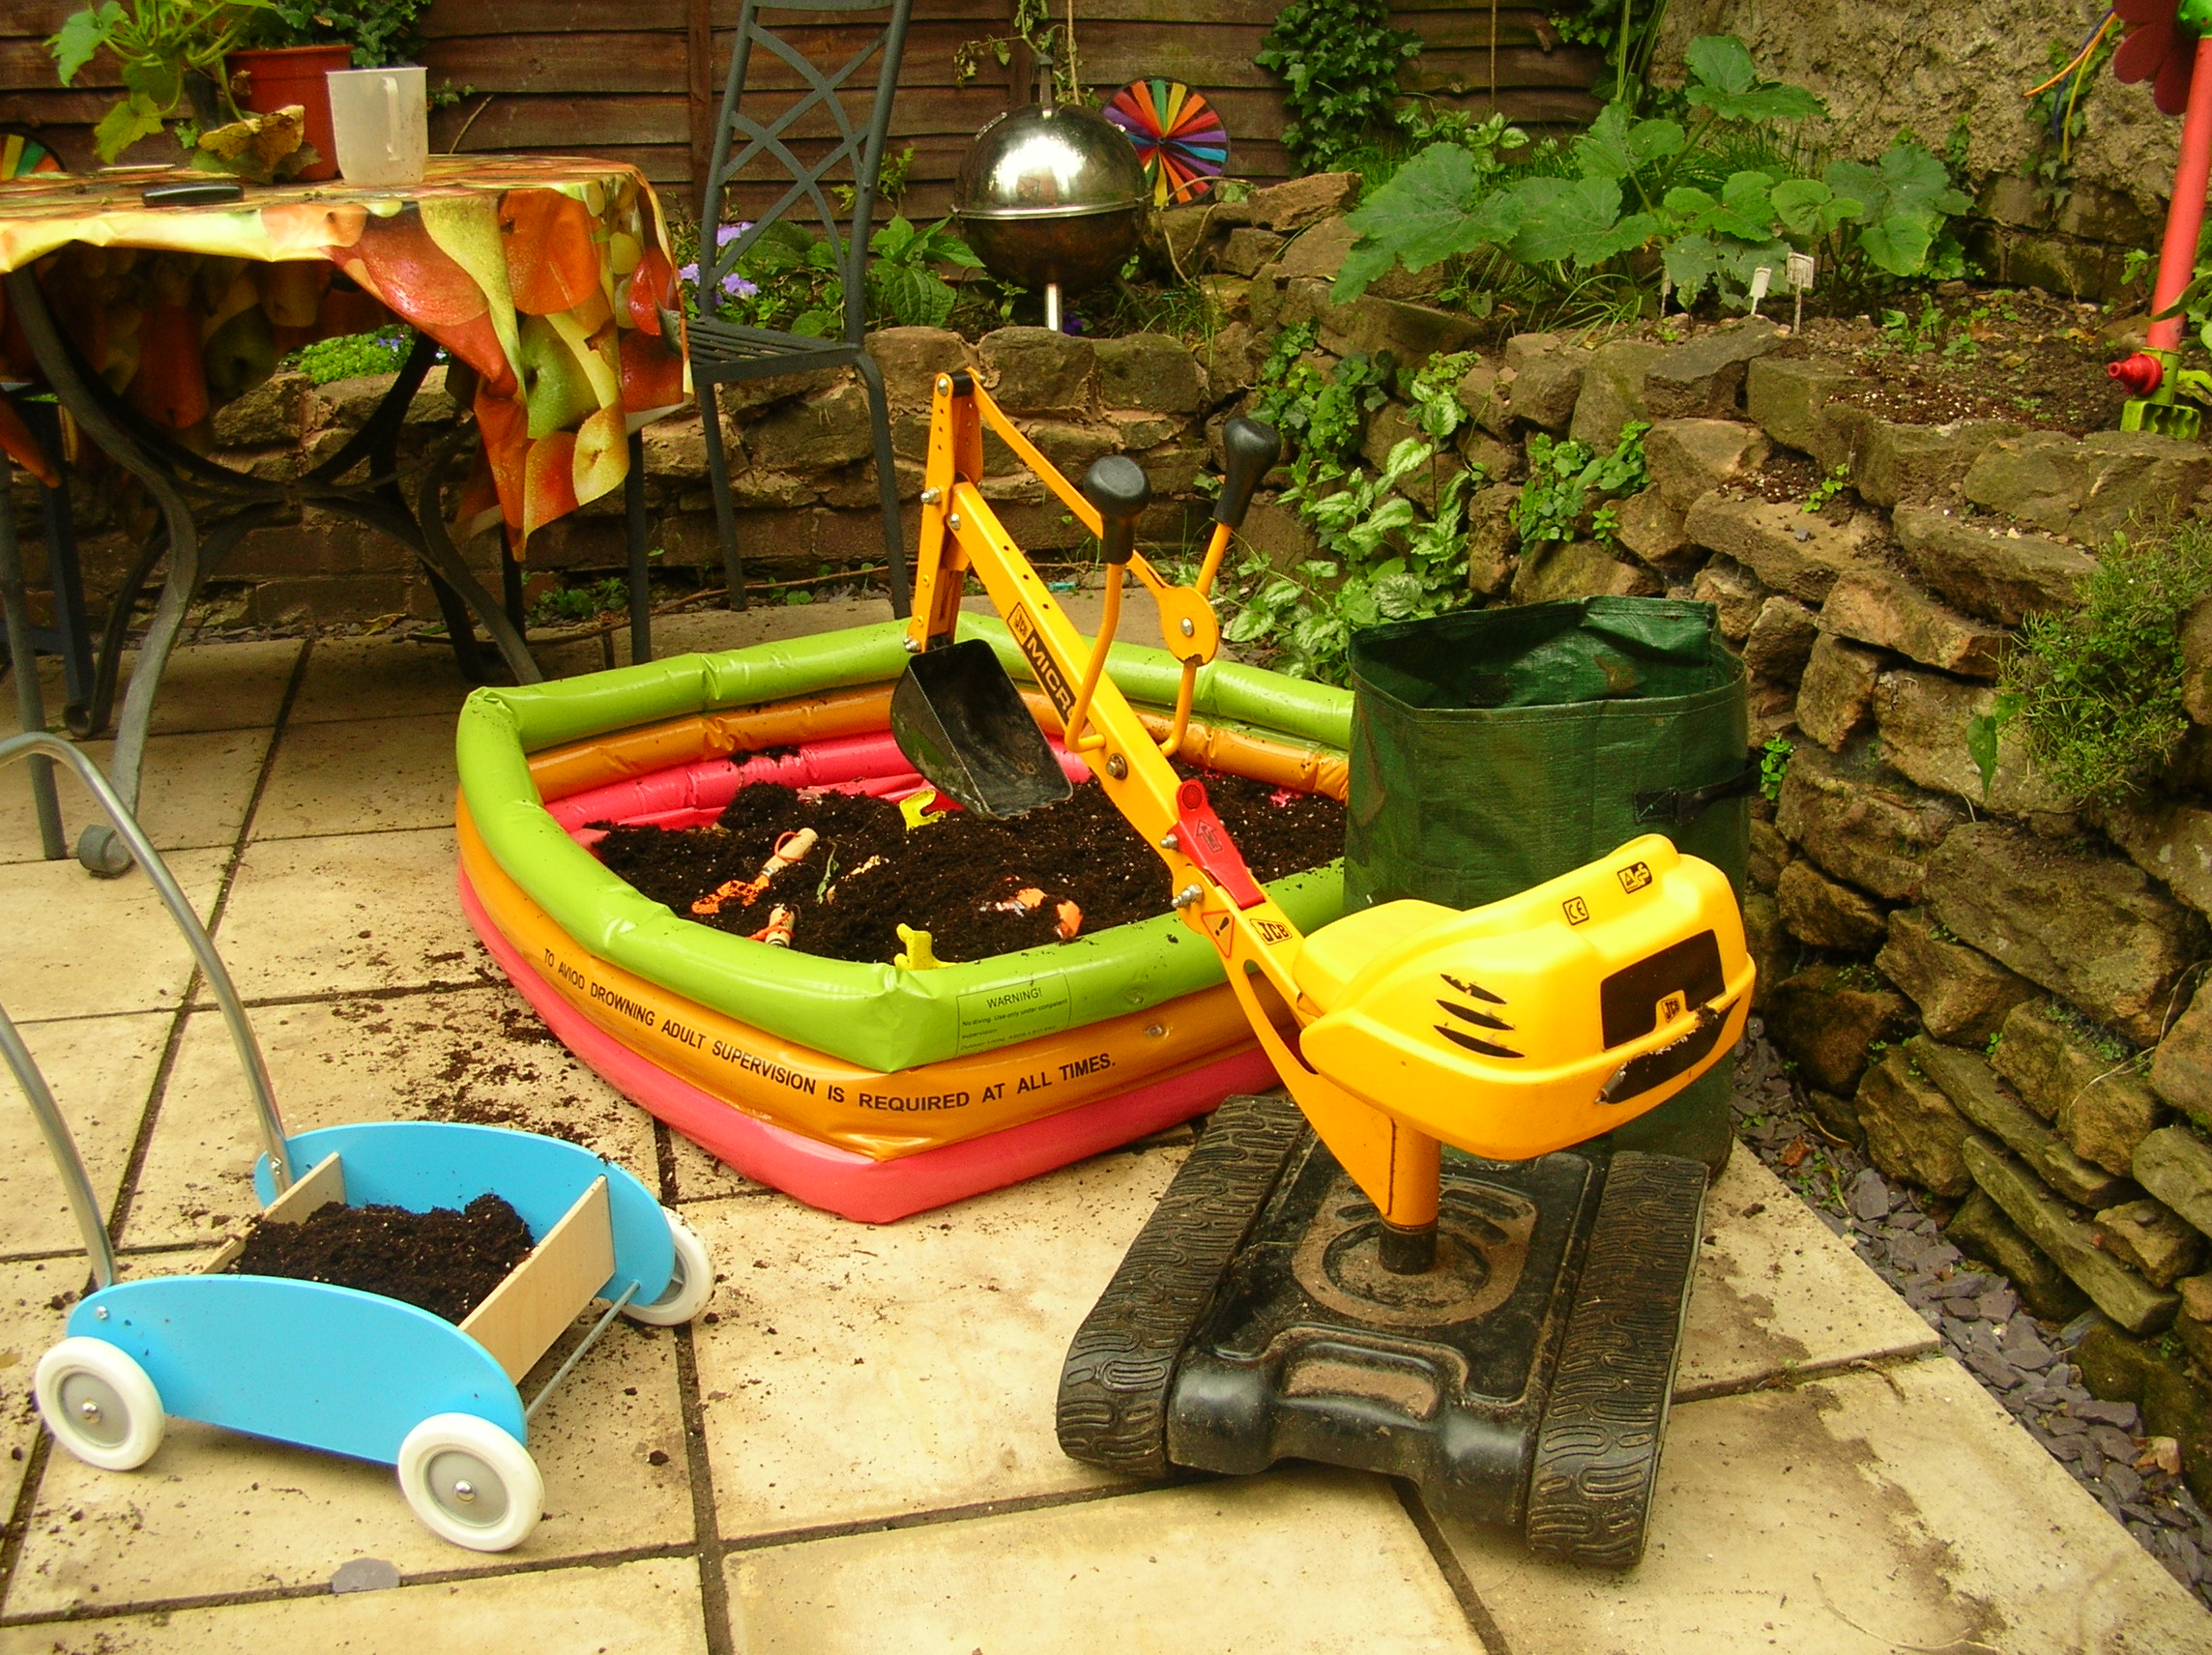 paddling pool and toy diggers being used to harvest potatoes